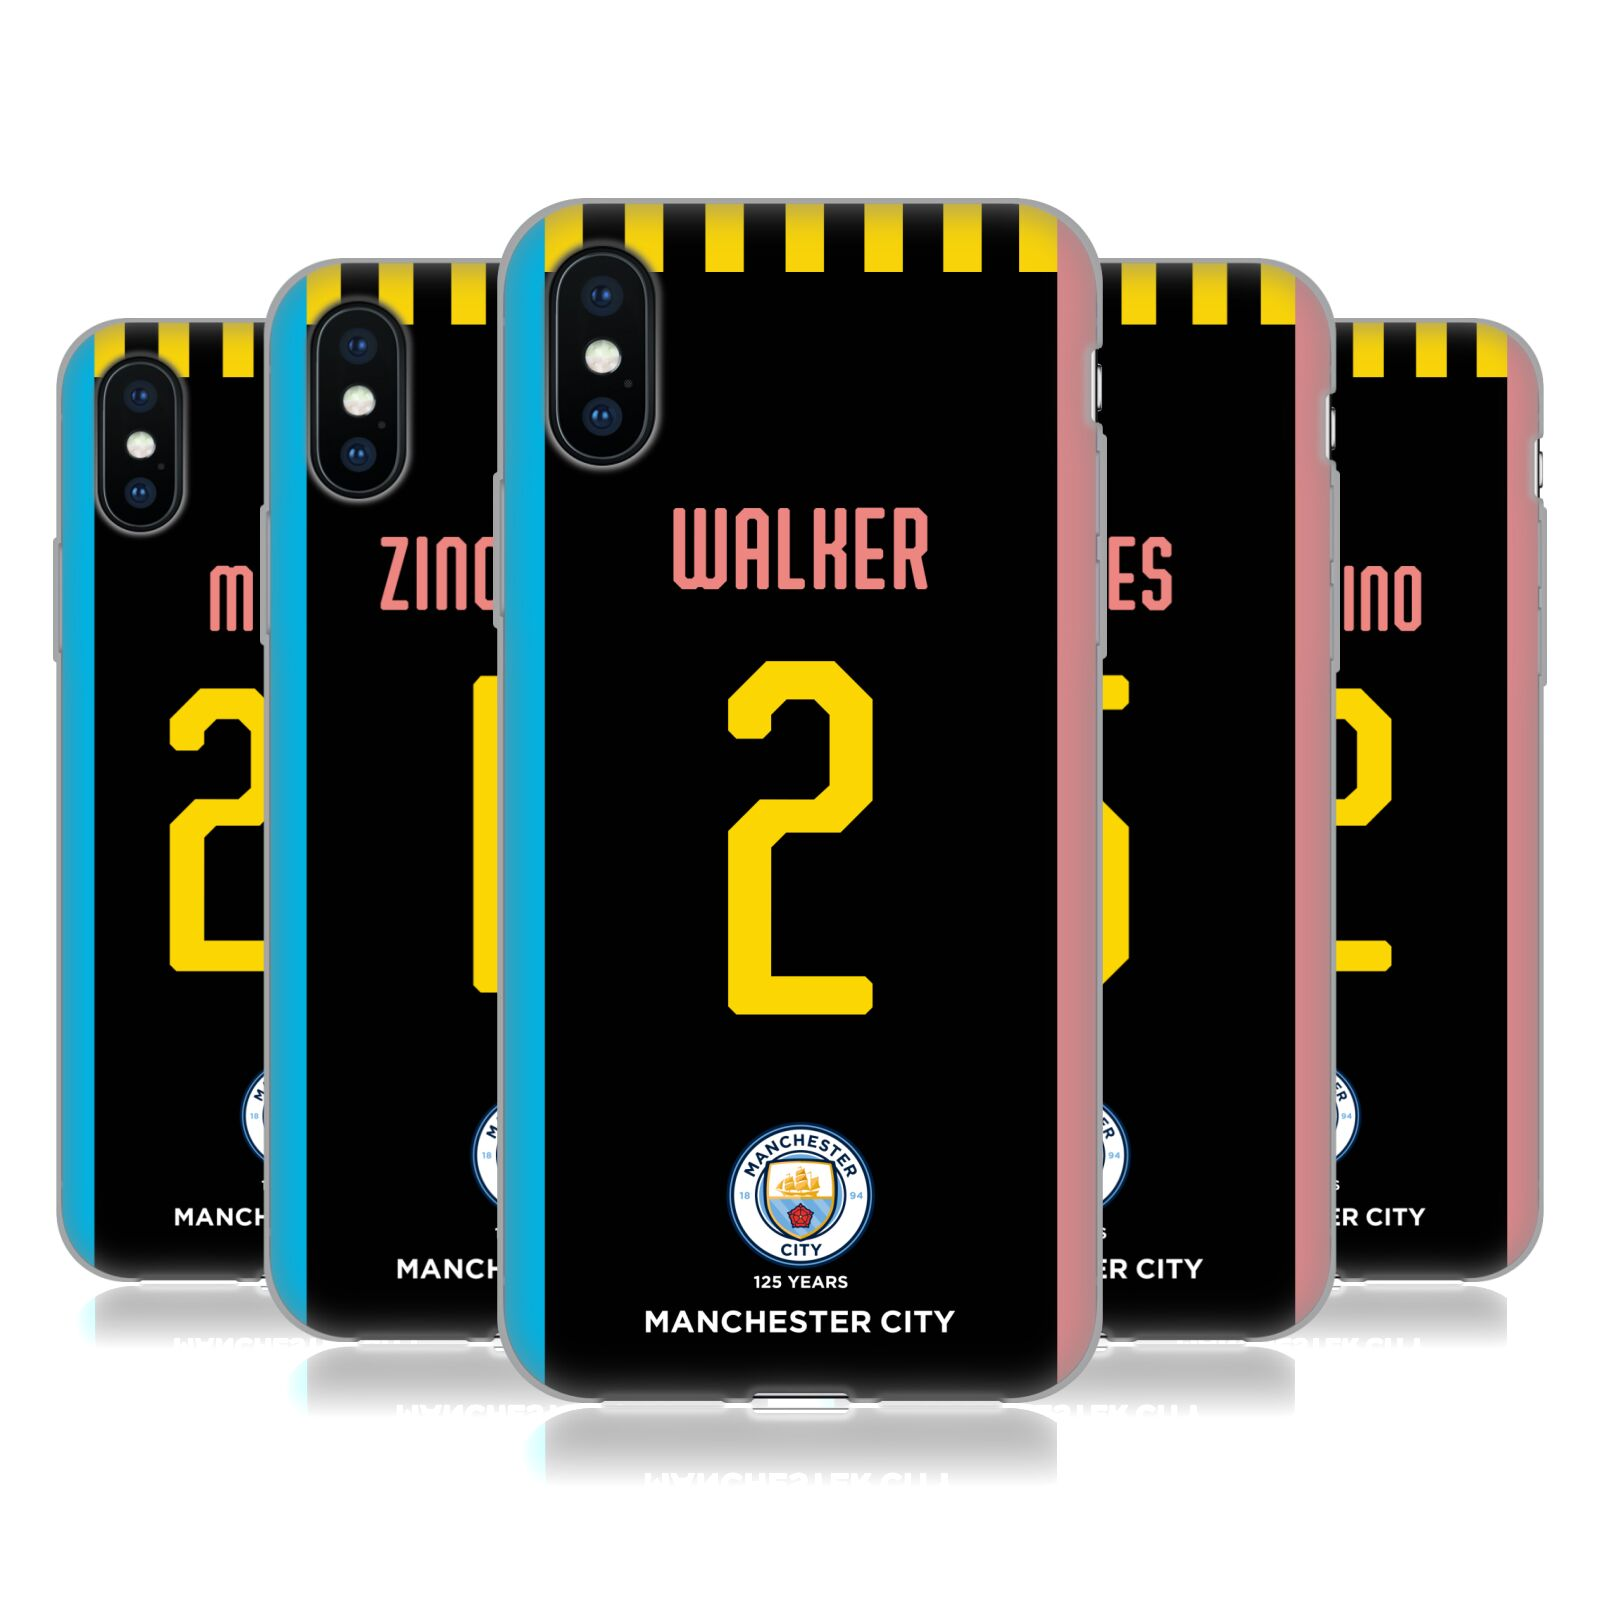 Manchester City Man City FC <!--translate-lineup-->2019/20 PLAYERS AWAY KIT GROUP 2<!--translate-lineup-->